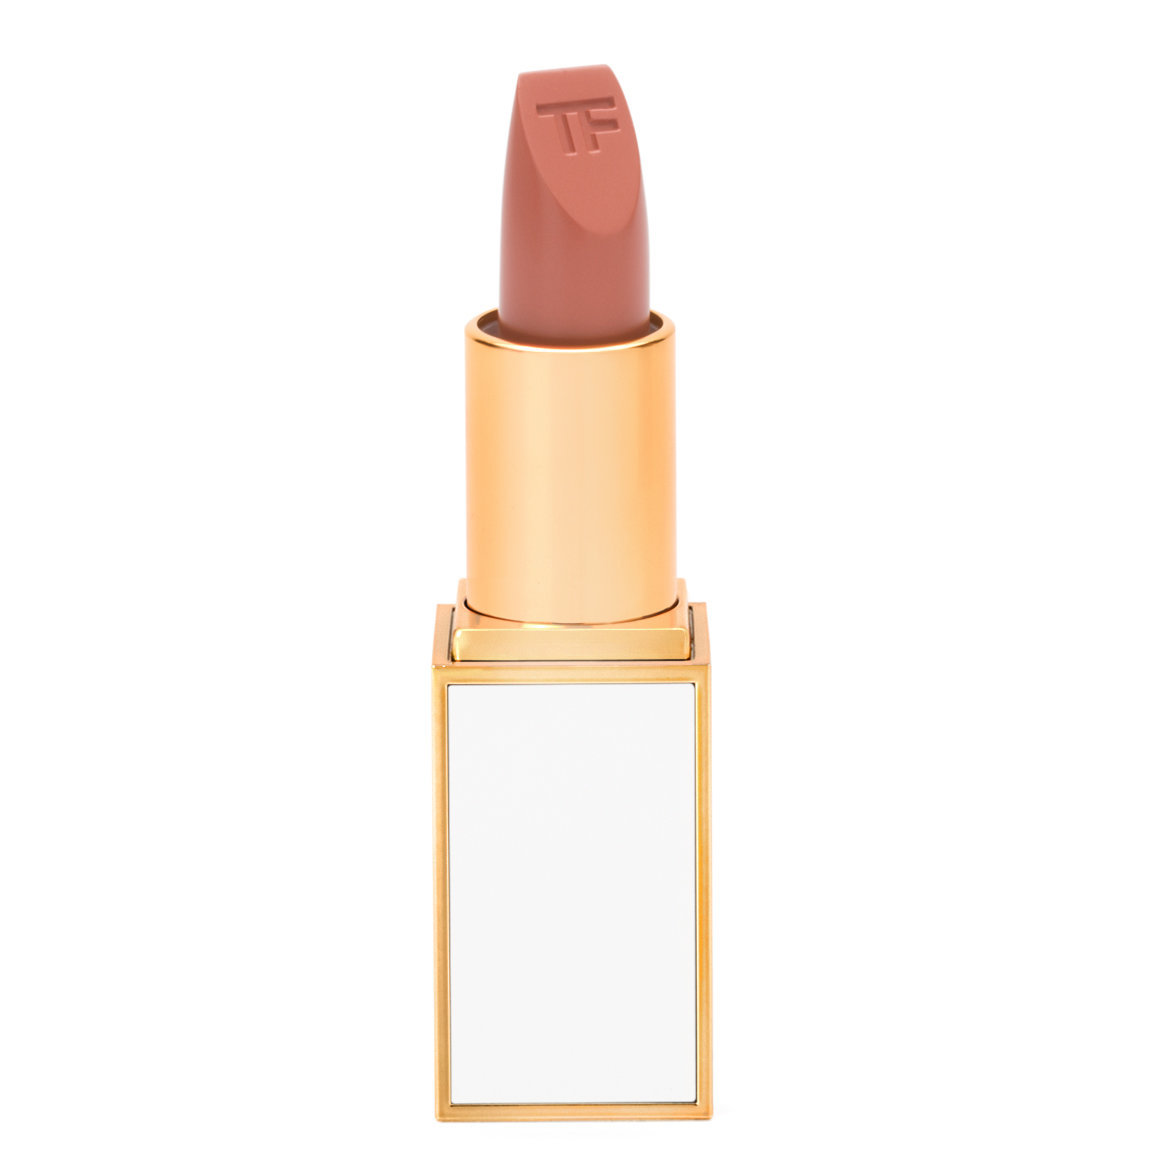 TOM FORD BEAUTY Ultra-Rich Lip Color in Revolve Around Me